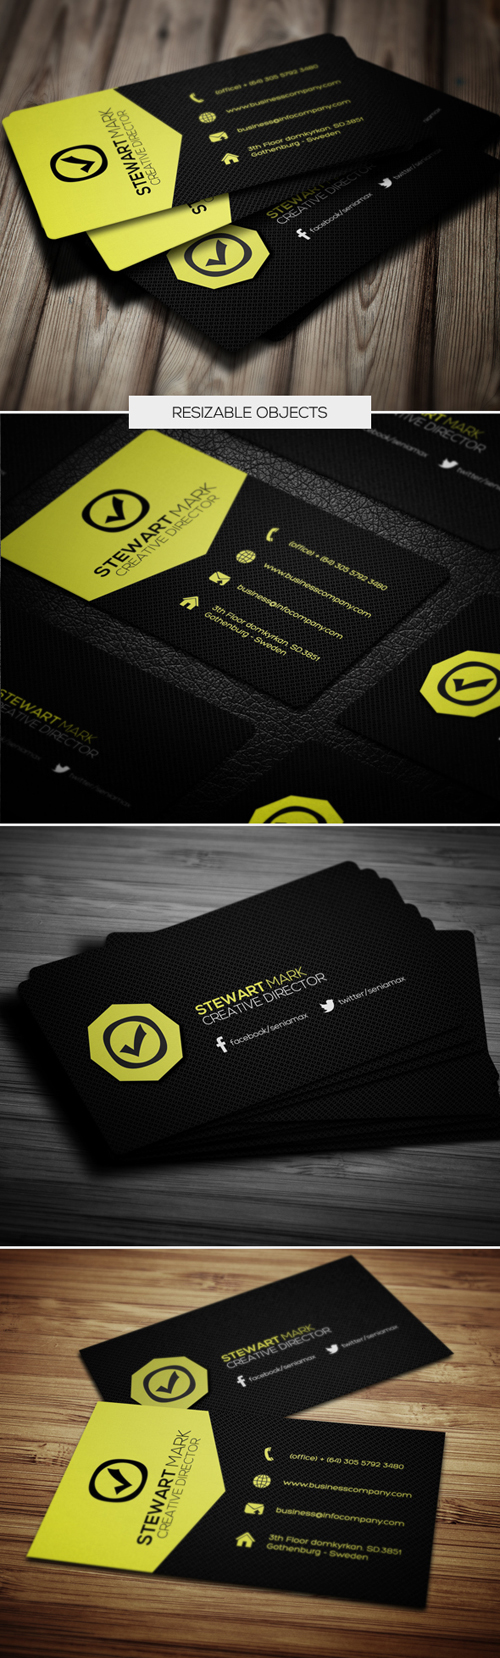 Exclusive design business cards templates design graphic business cards template design 7 magicingreecefo Gallery